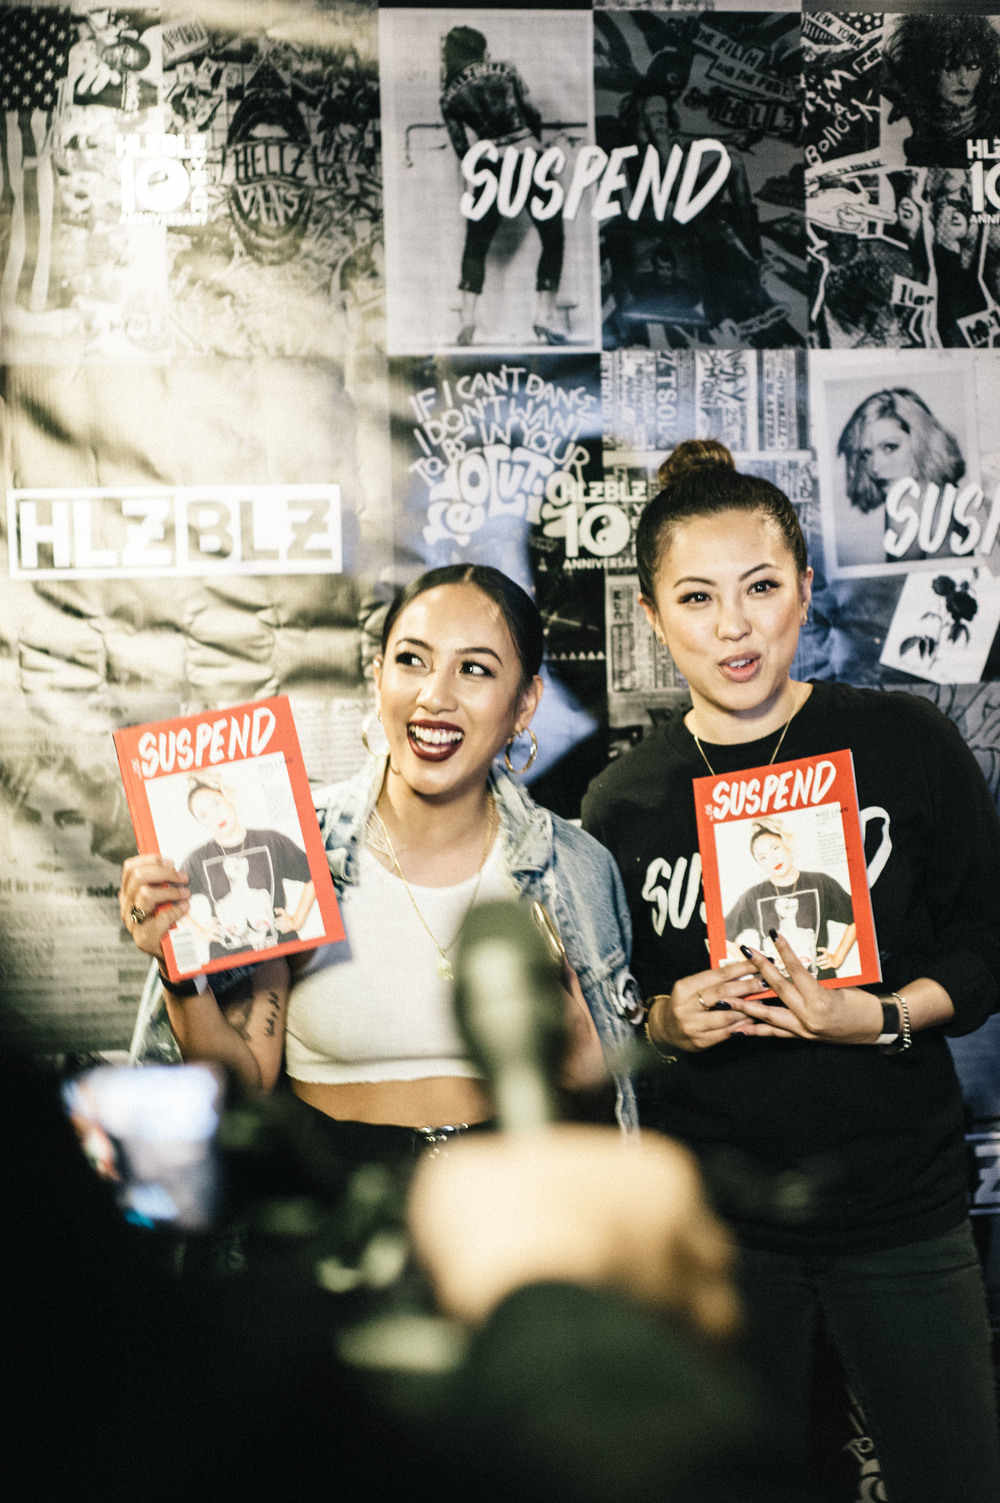 Miss Lawn and EIC Diane Abapo at the ISSUE 06 Launch x HLZBLZ 10Year Anniversary (Feb 11) at Globe Theater. / Photo: © Jordan Abapo for SUSPEND Magazine